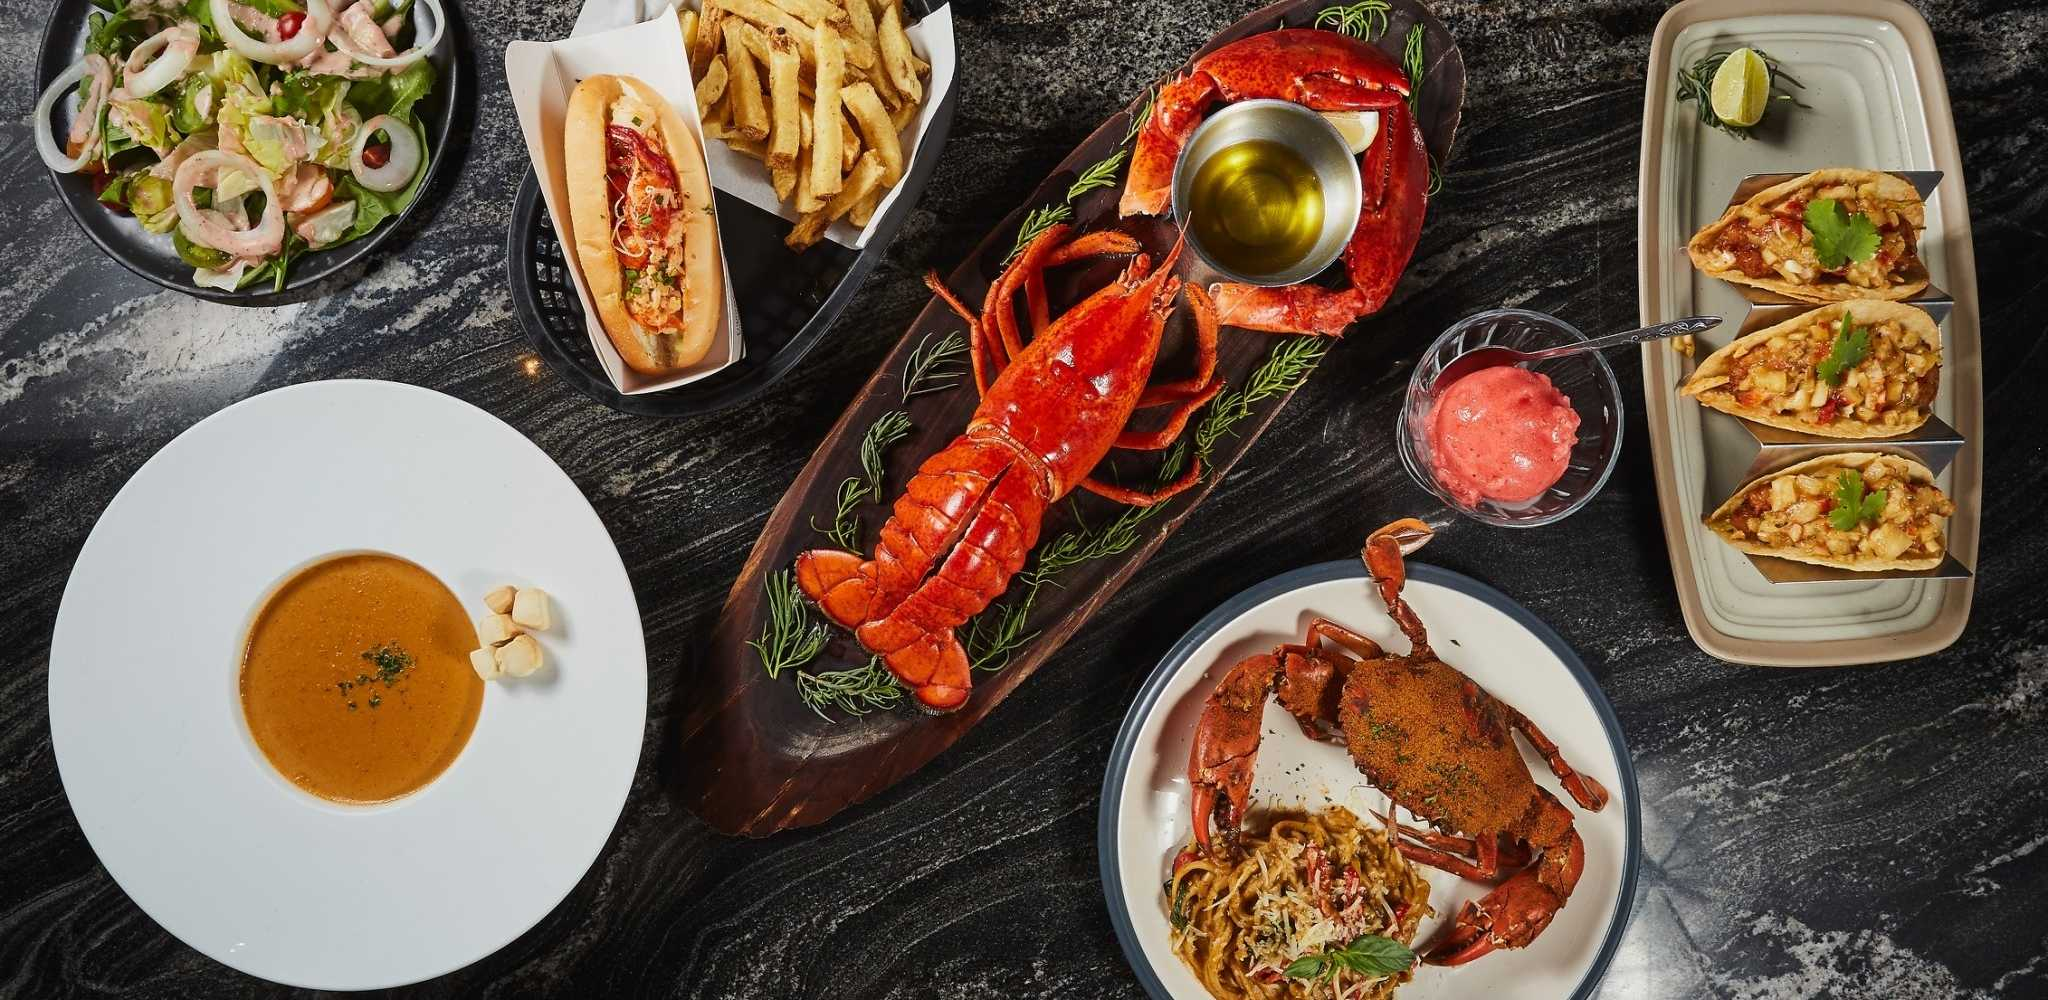 Crab, lobster and more goodies at Crab & Claw in Siam Paragon